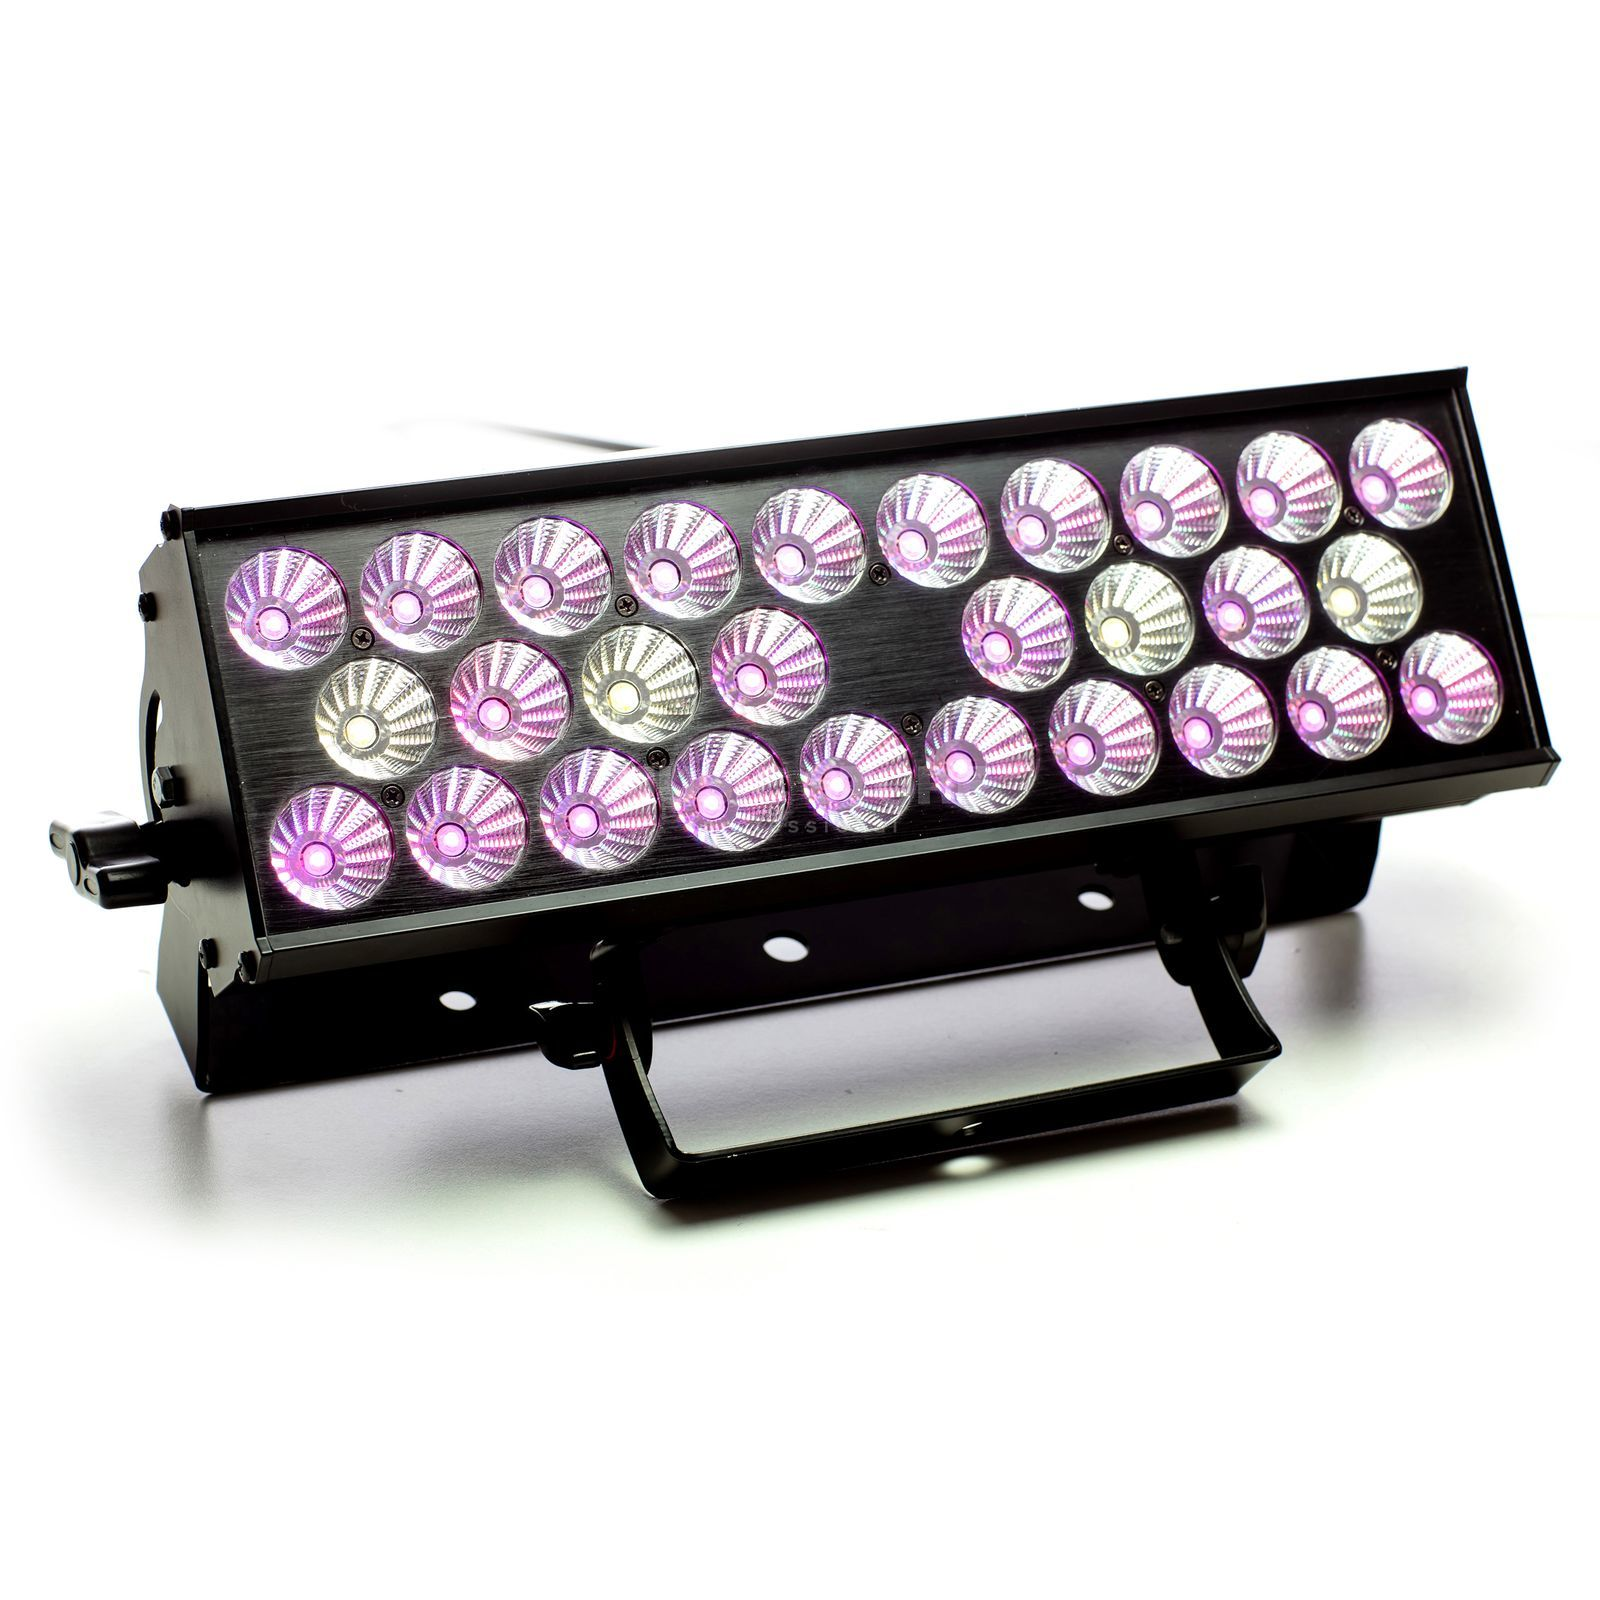 Ignition LED Powerbatten RGB+CW 28x3W  Produktbillede